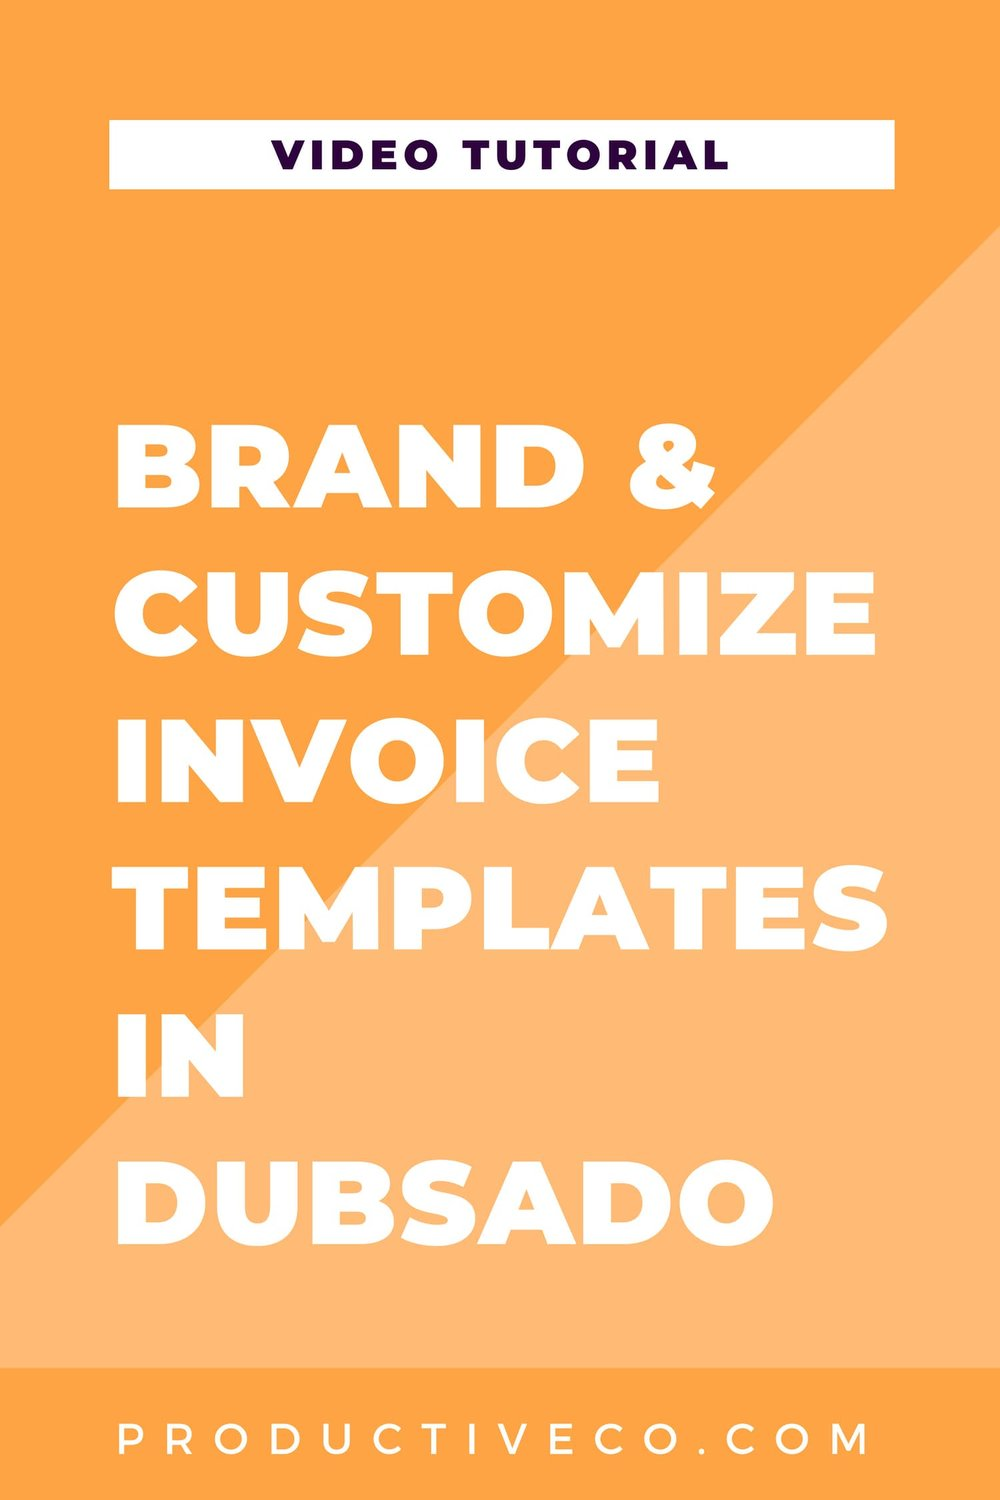 Customize your invoice templates in Dubsado quickly. These changes will appear on every invoice.